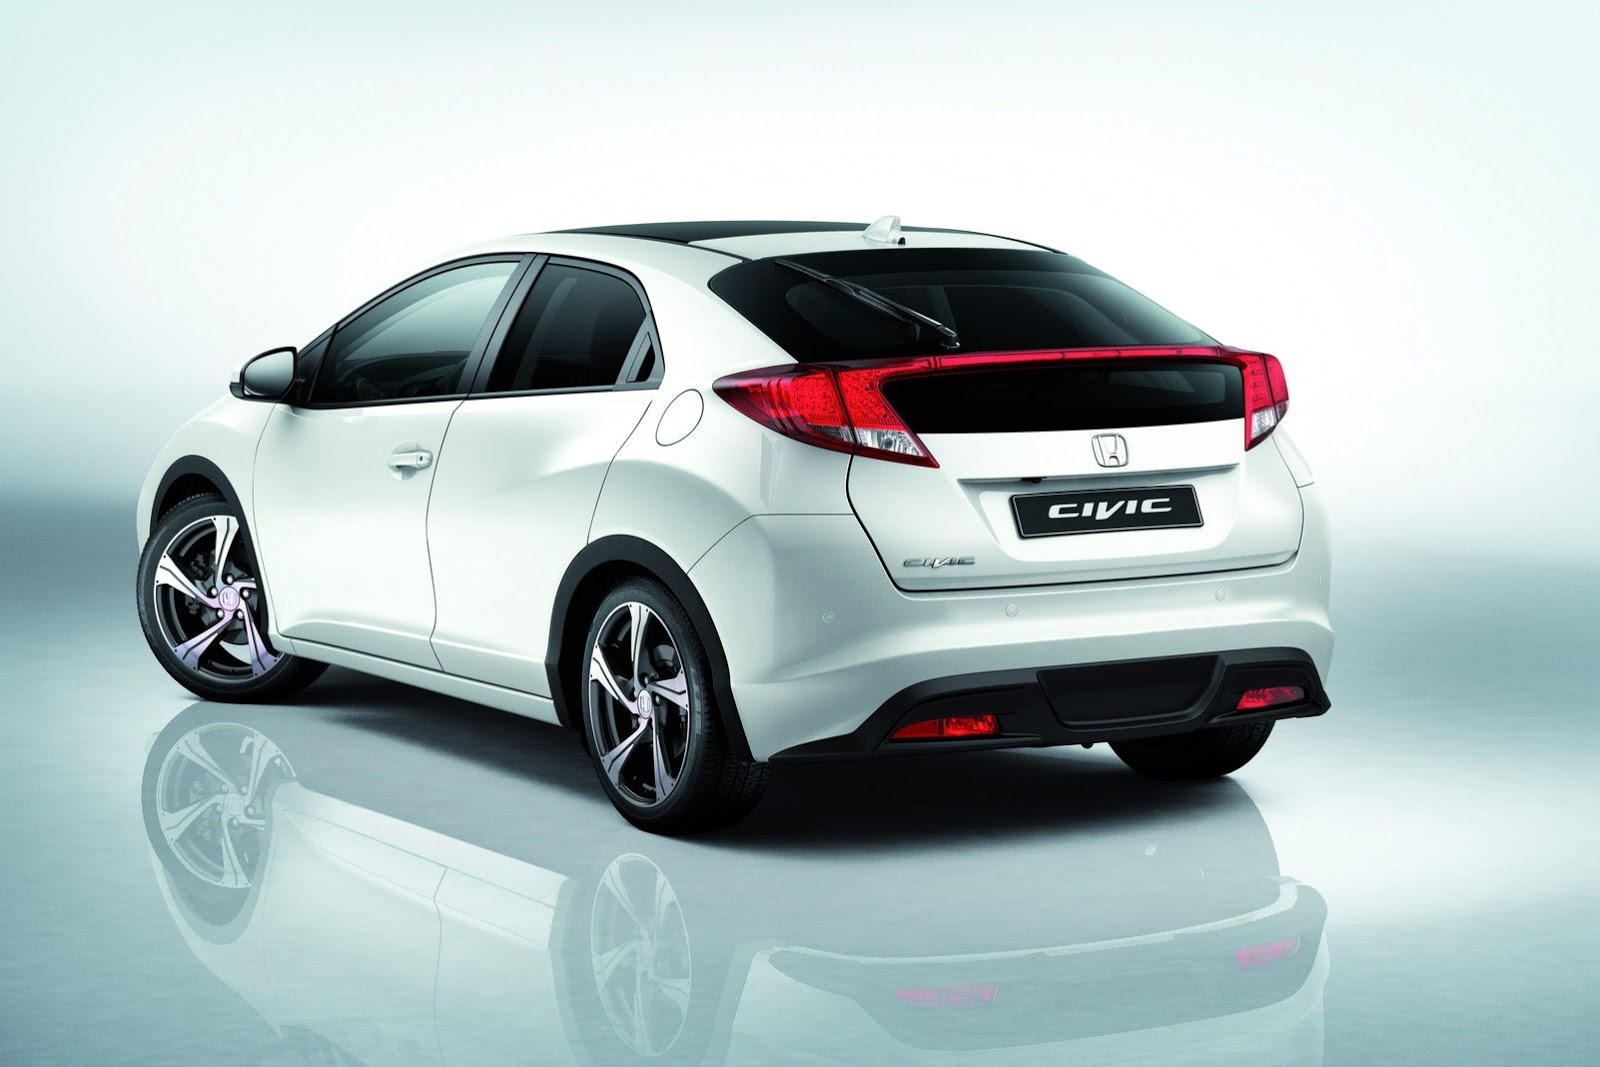 Honda Civic 1.5 2014 photo - 1